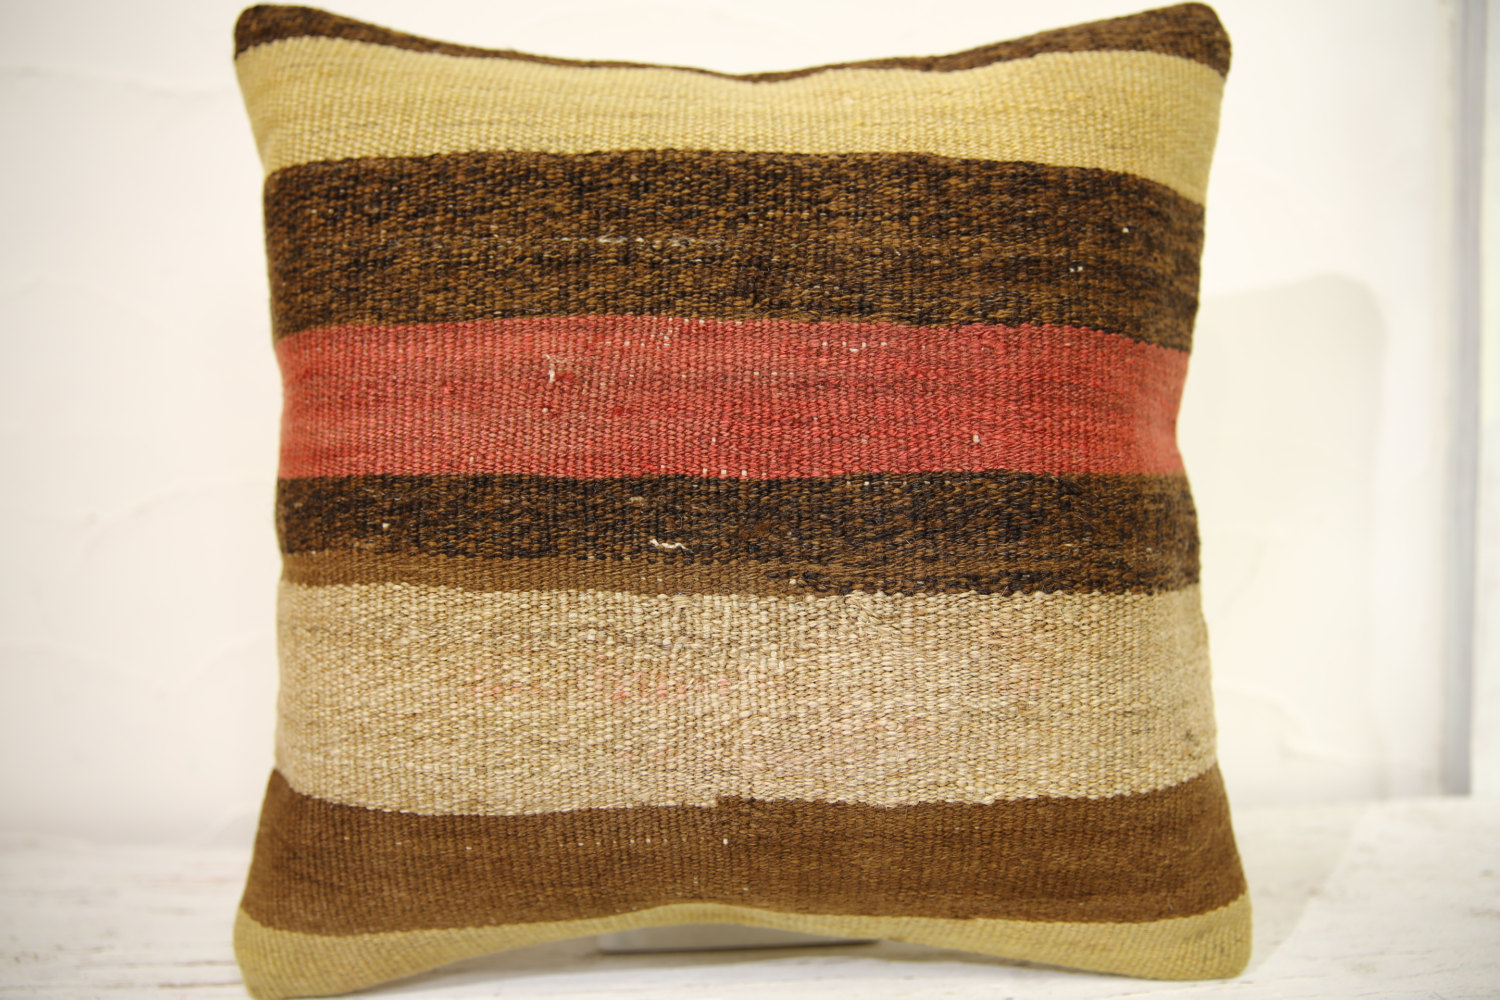 Kilim Pillows | 16x16 | Decorative Pillows | 899 | Accent Pillows , turkish pill